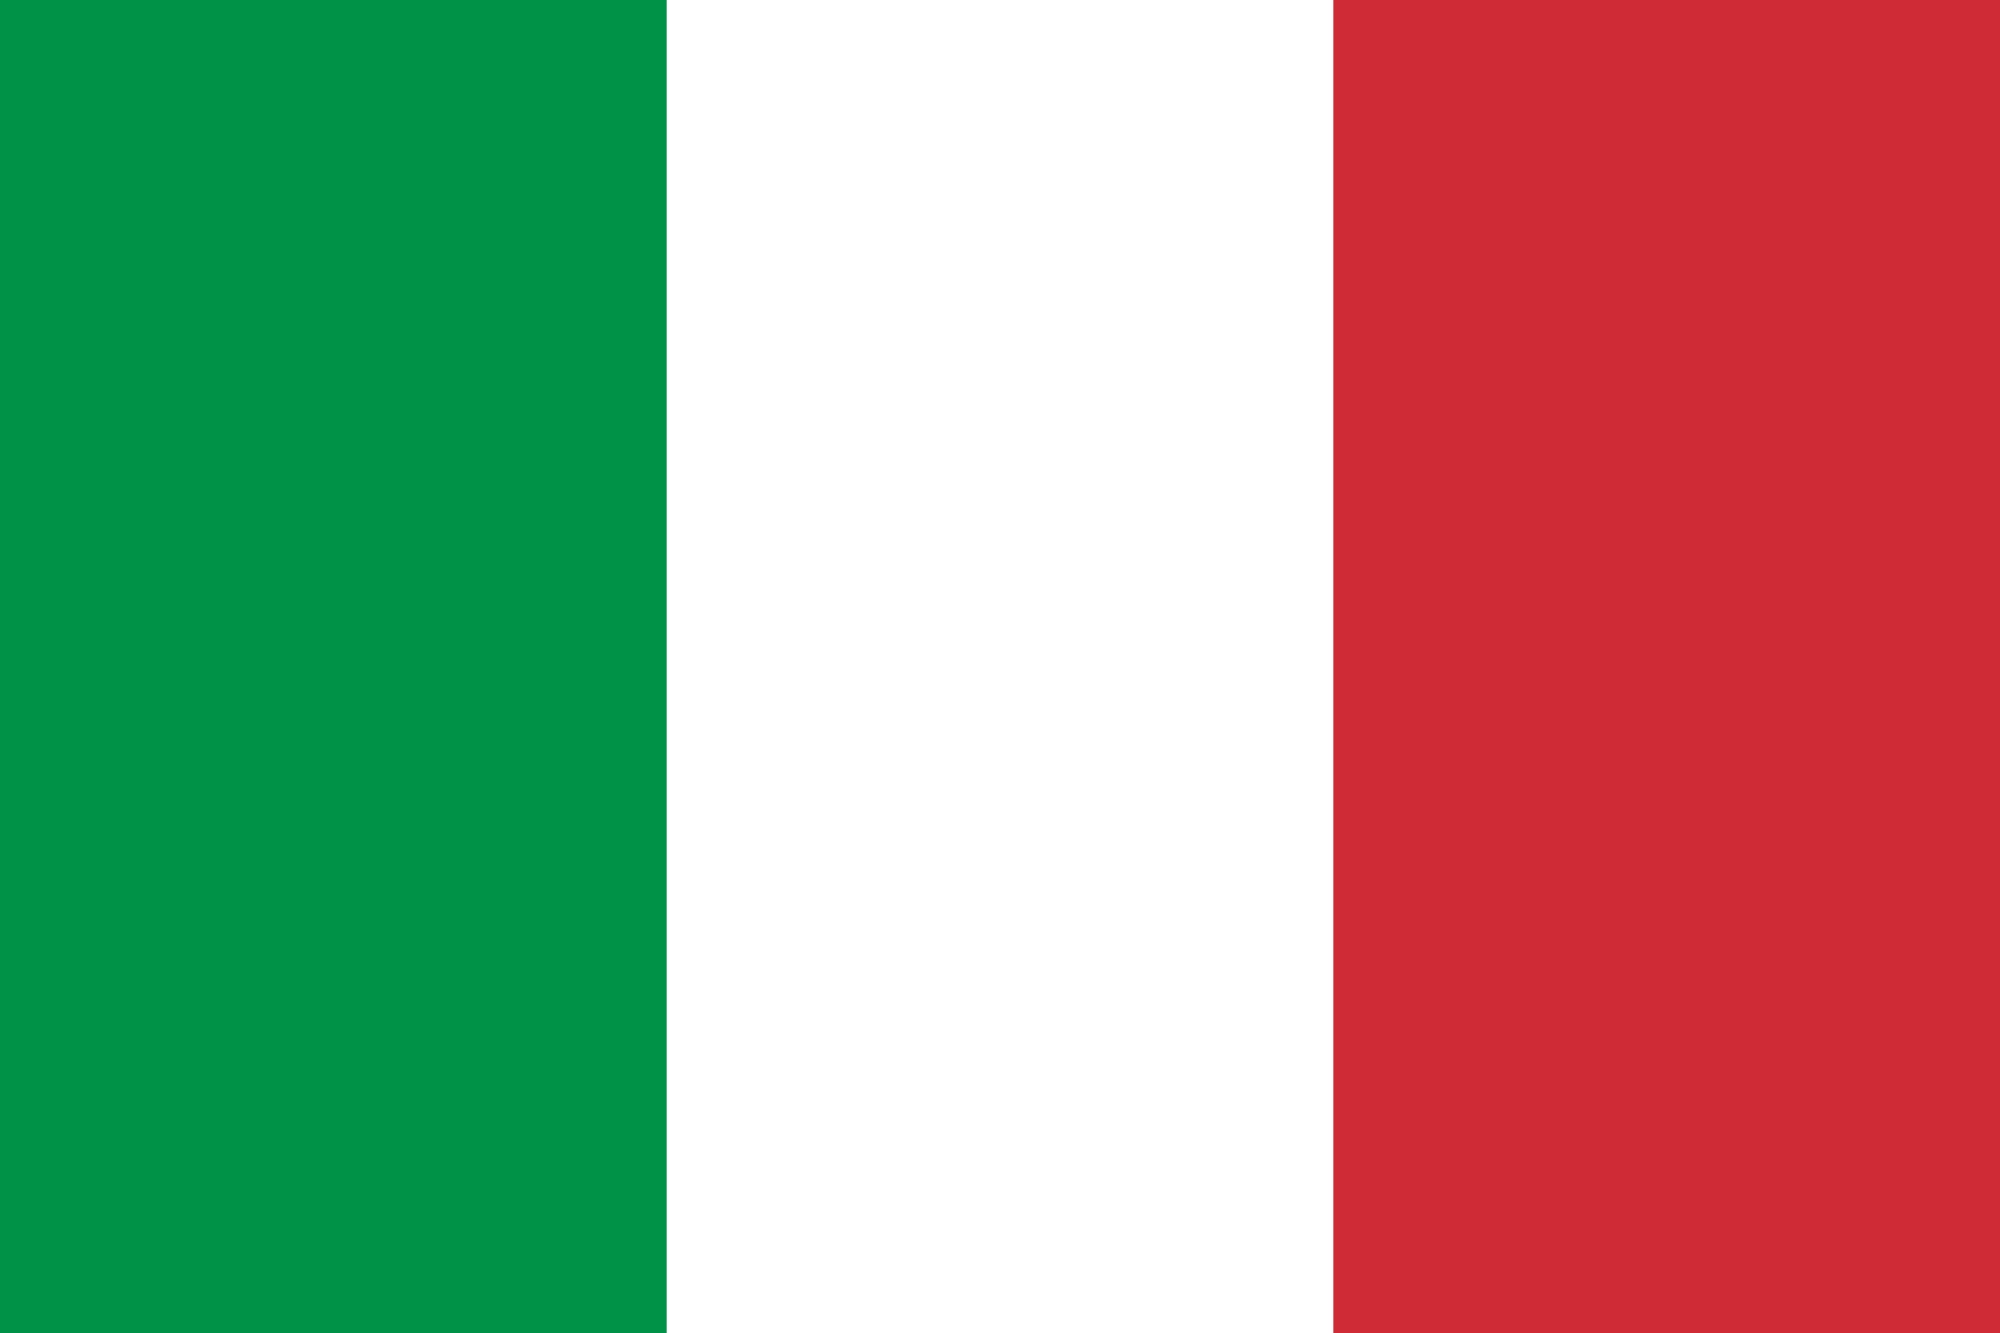 Flagge Italiens